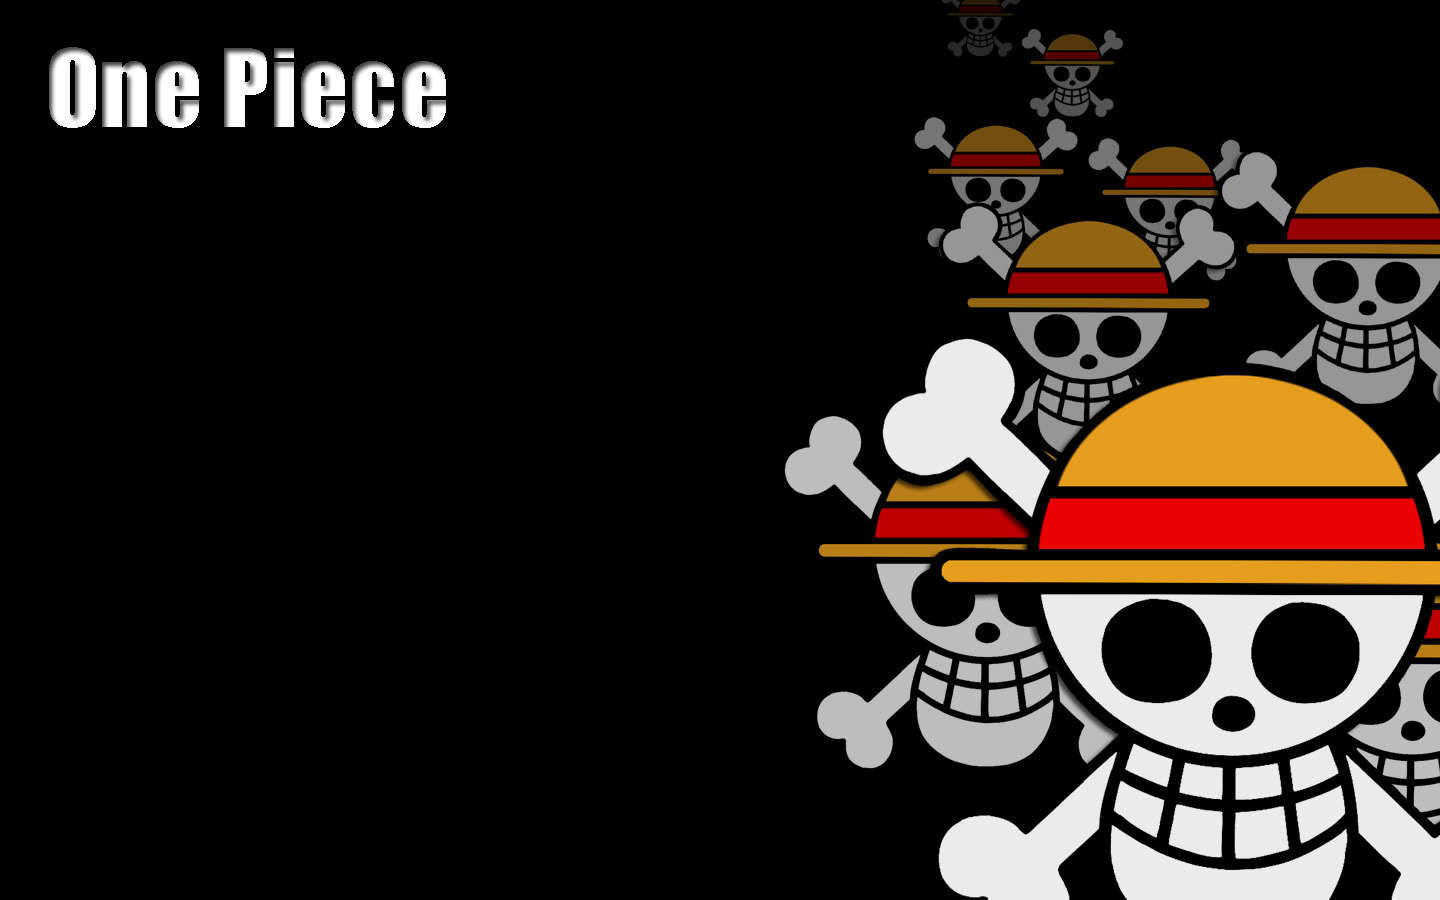 One Piece All Arrembaggio Immagini Jolly Roger Hd Wallpaper And